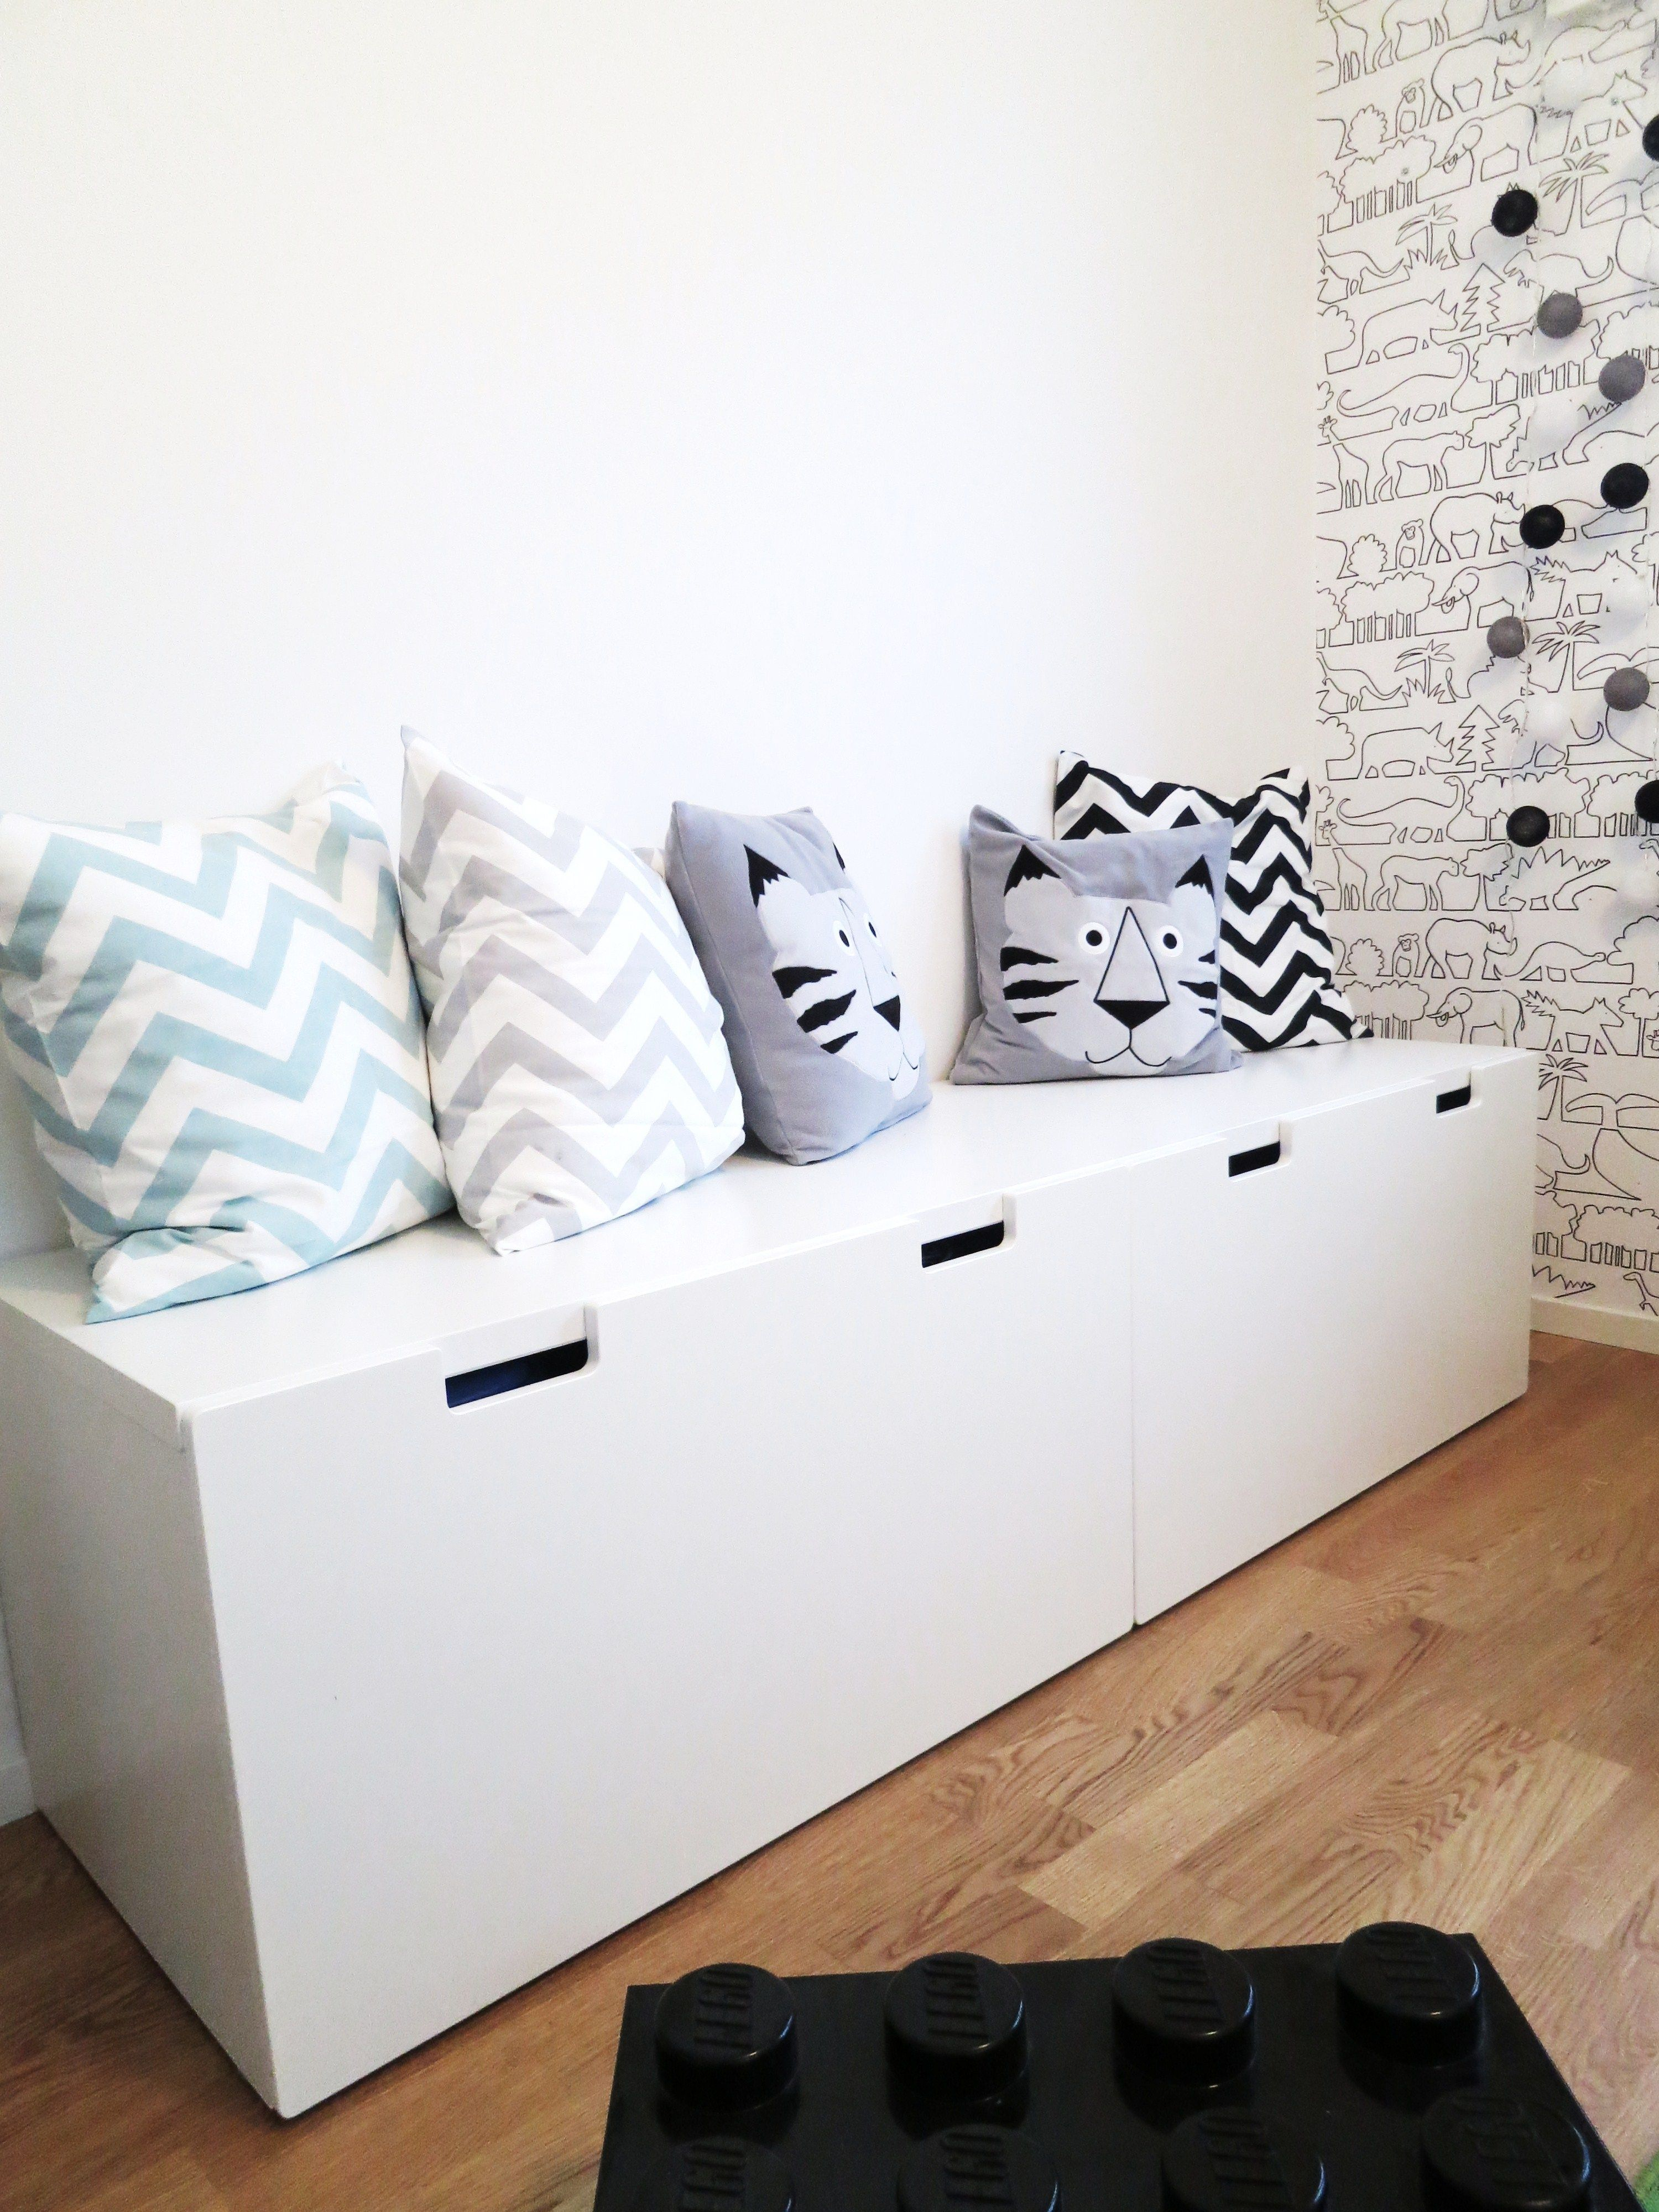 Stuva Ikea   Idea For Toy Storage. Have One Already. Add Cushions To Soften.